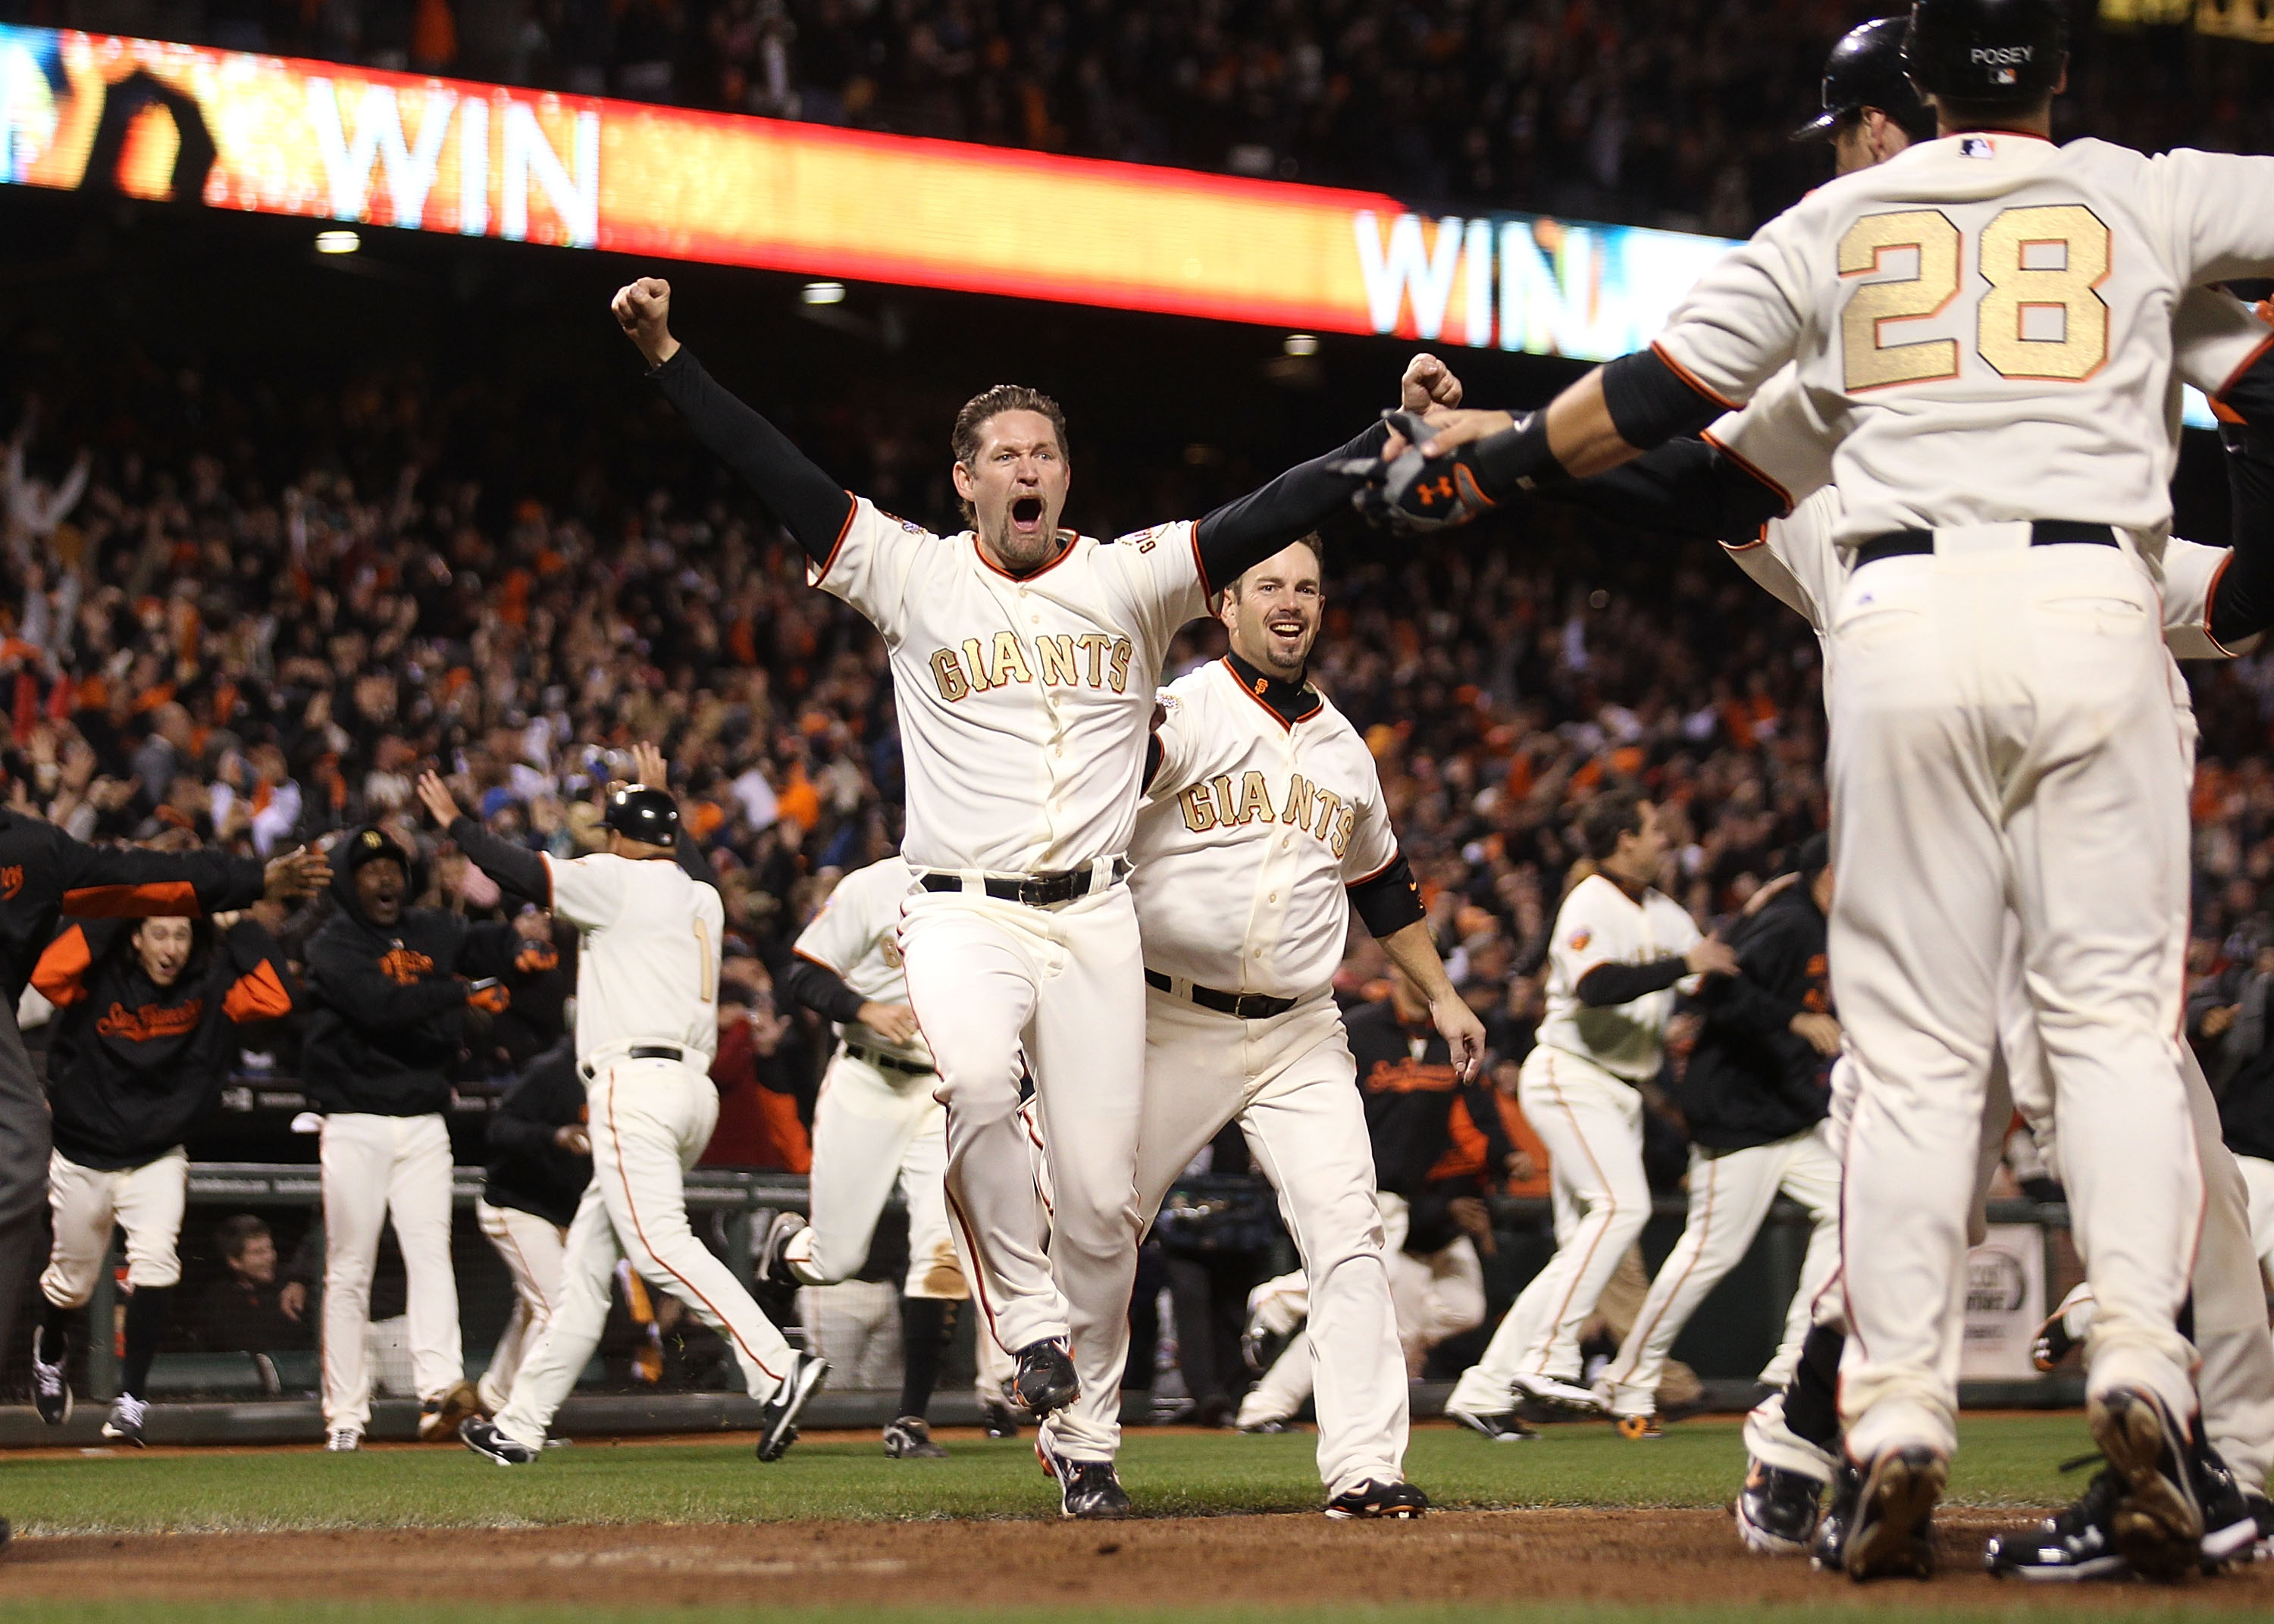 SAN FRANCISCO, CA - APRIL 09:  Aubrey Huff #17 celebrates after Miguel Tejada of the San Francisco Giants hit the game winning hit in the ninth inning against the St. Louis Cardinals at AT&T Park on April 9, 2011 in San Francisco, California.  (Photo by J